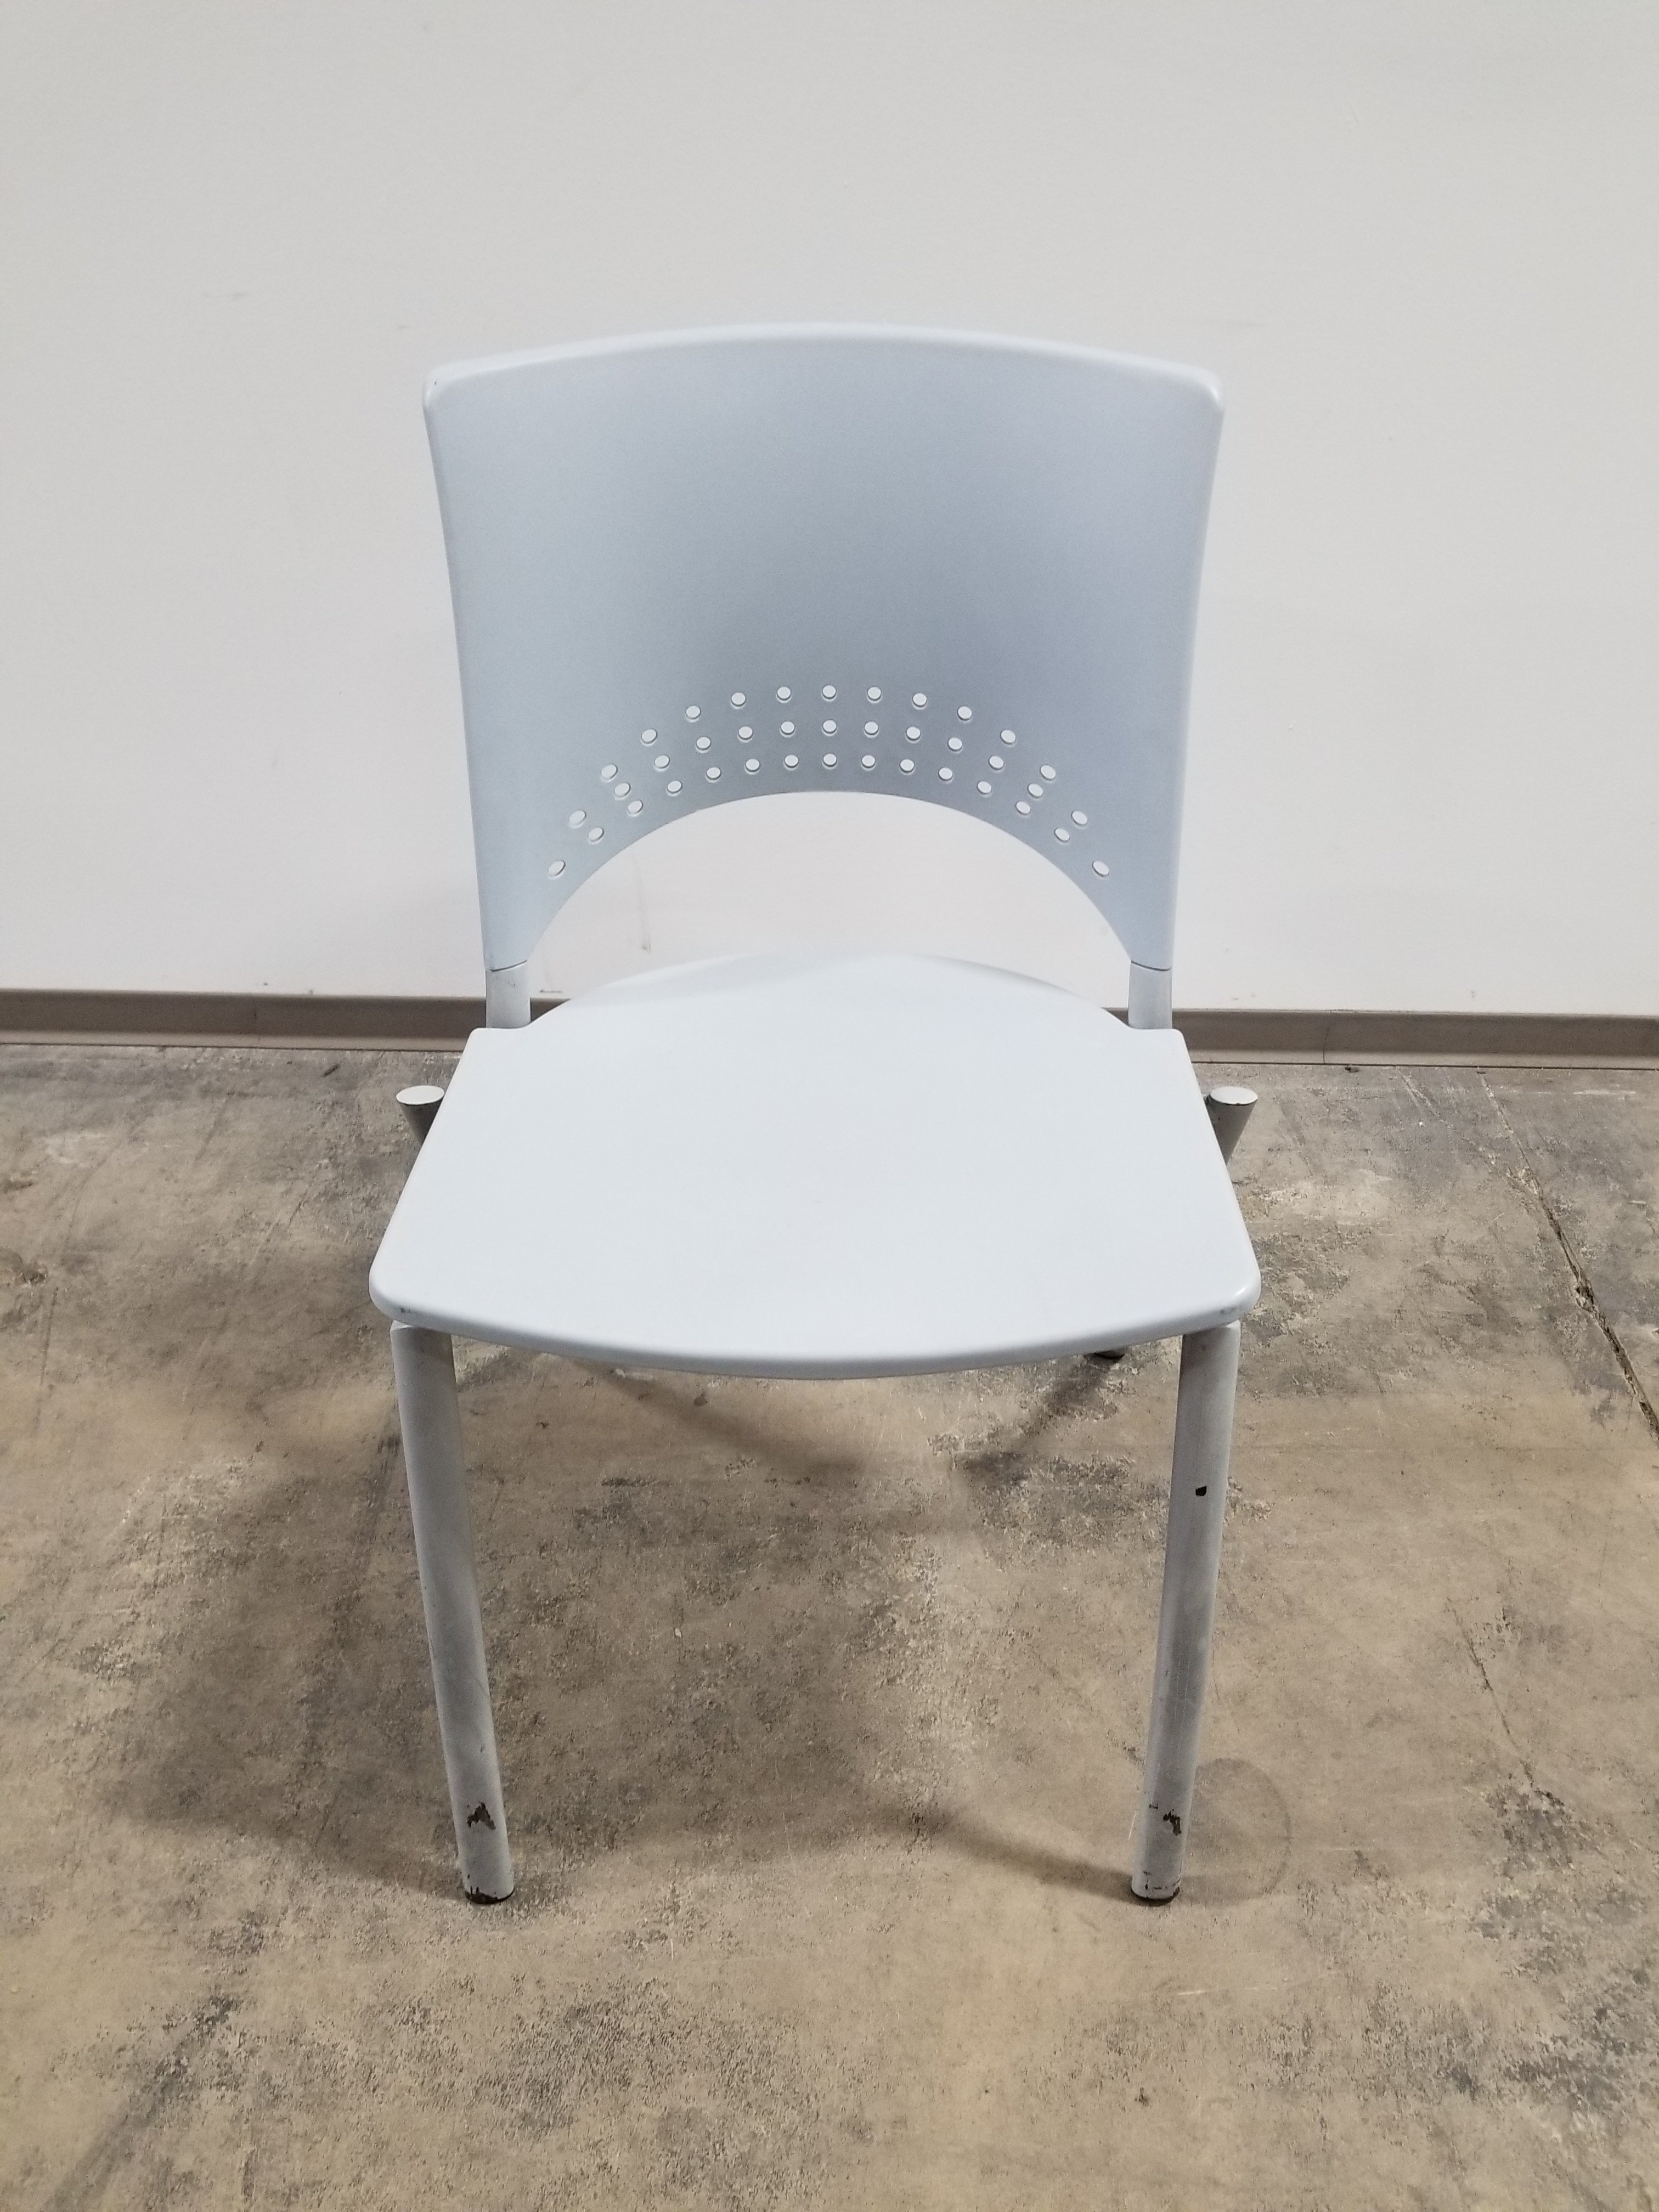 Stacking durable plastic chairs